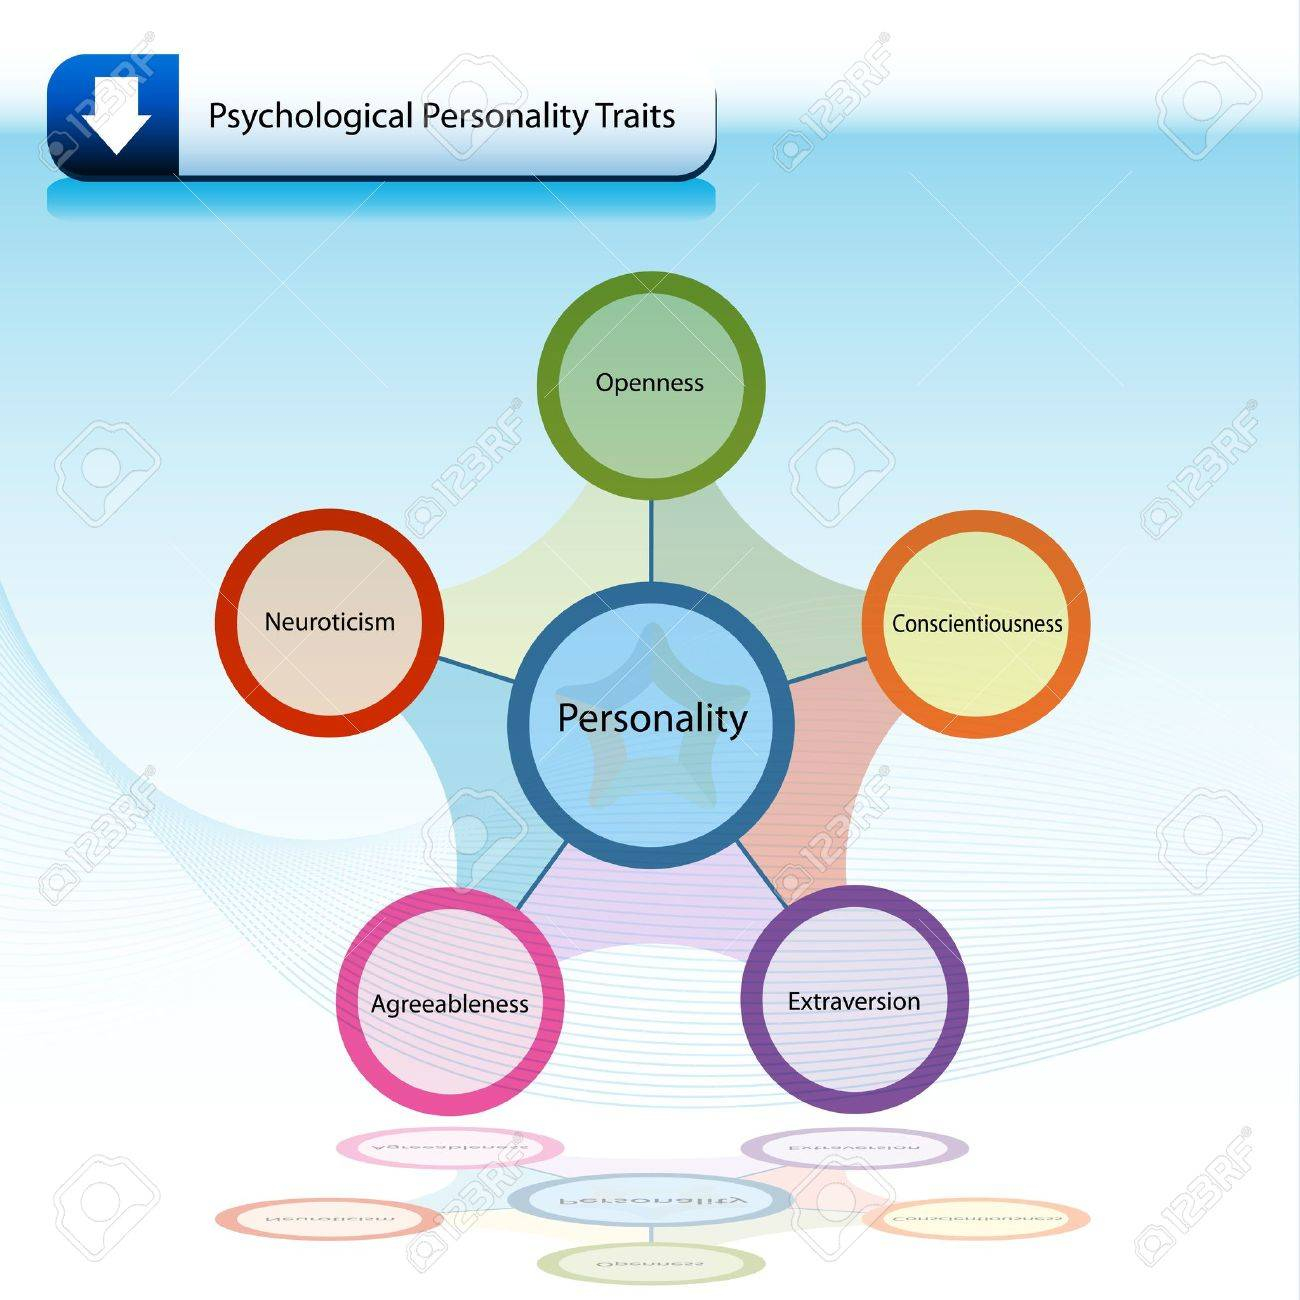 An image of a psychological personality traits chart diagram an image of a psychological personality traits chart diagram banco de imagens 9805343 ccuart Images